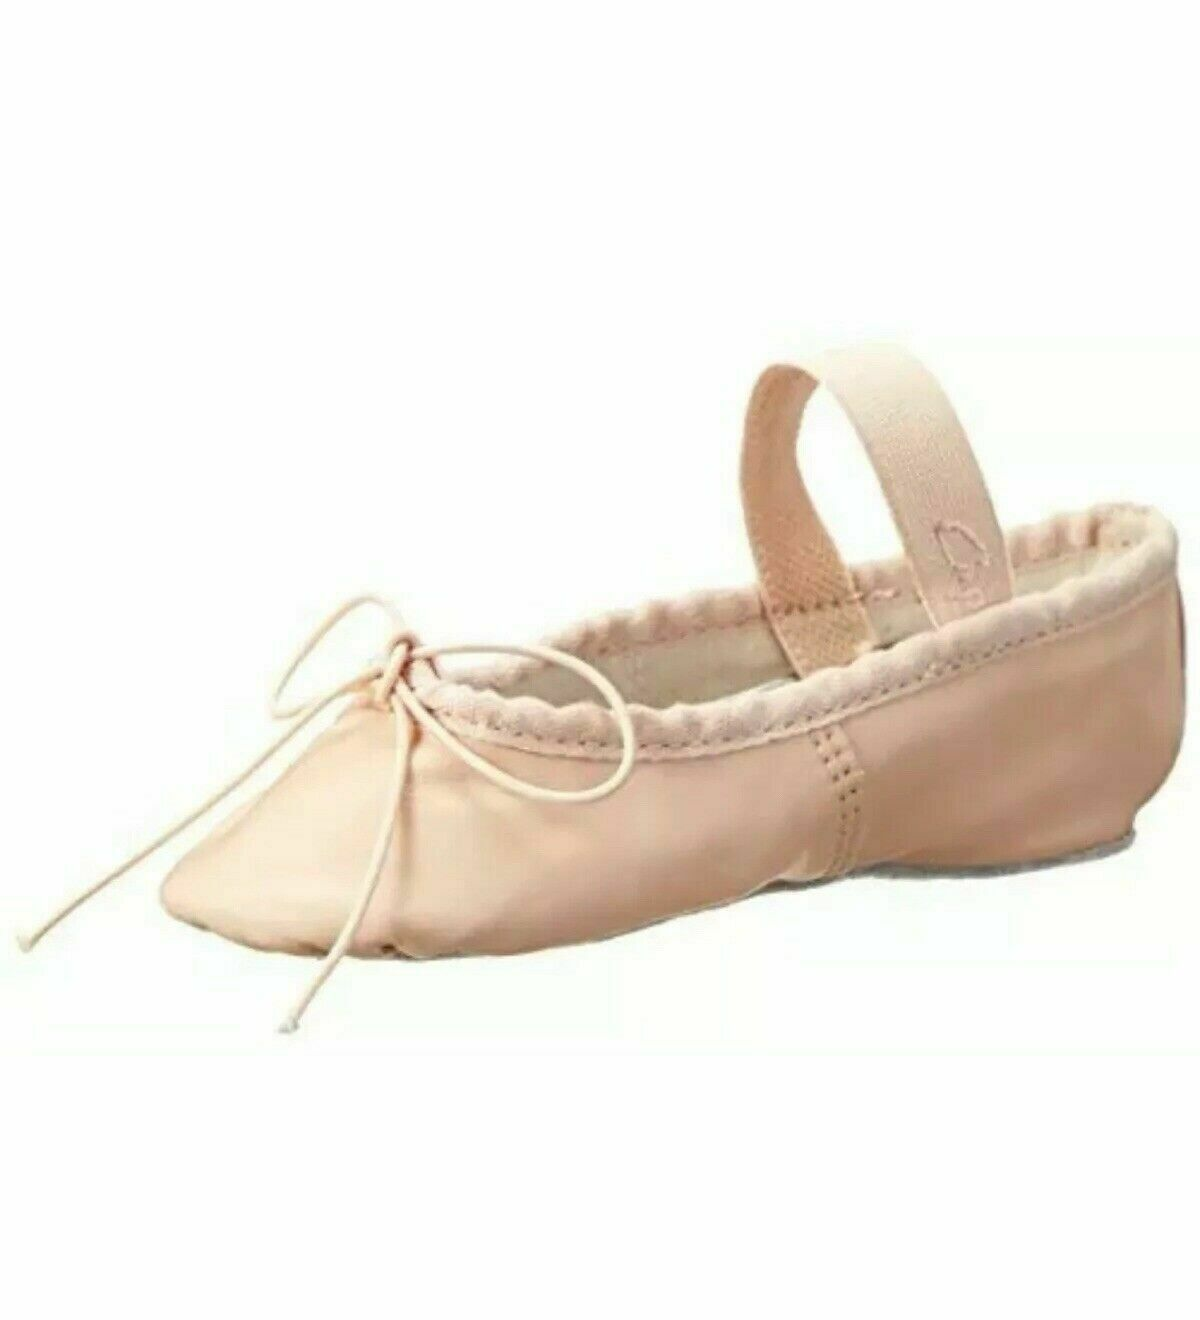 Capezio Youth Teknik 200C NPK Pink Full Sole Ballet Shoe Size 10B 10 B